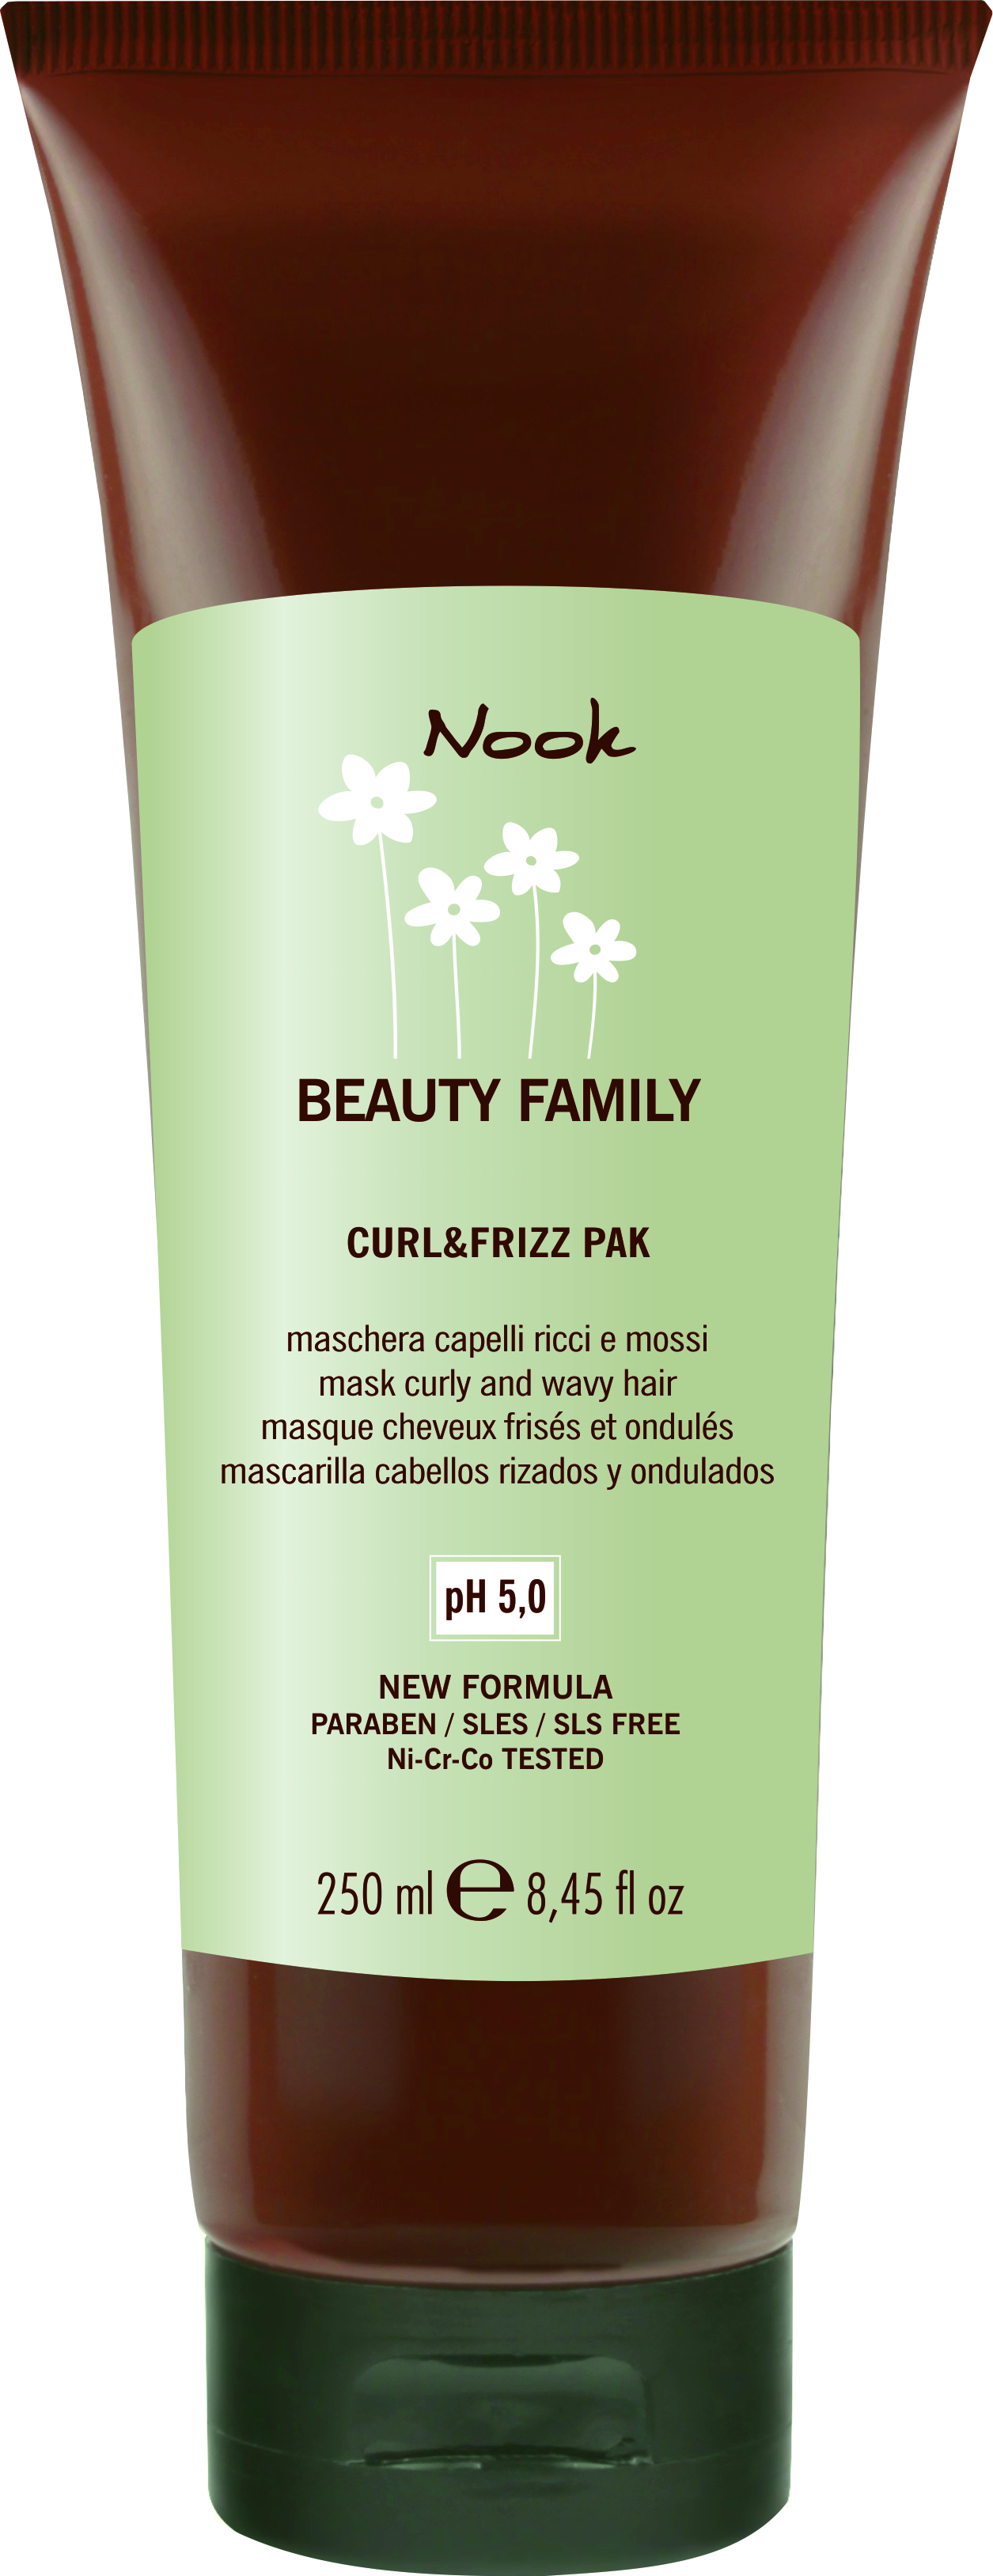 Nook Beauty Family Mask Curly And Wavy Hair Маска для кудрявых волос pH 5,0 (250 ml) 247